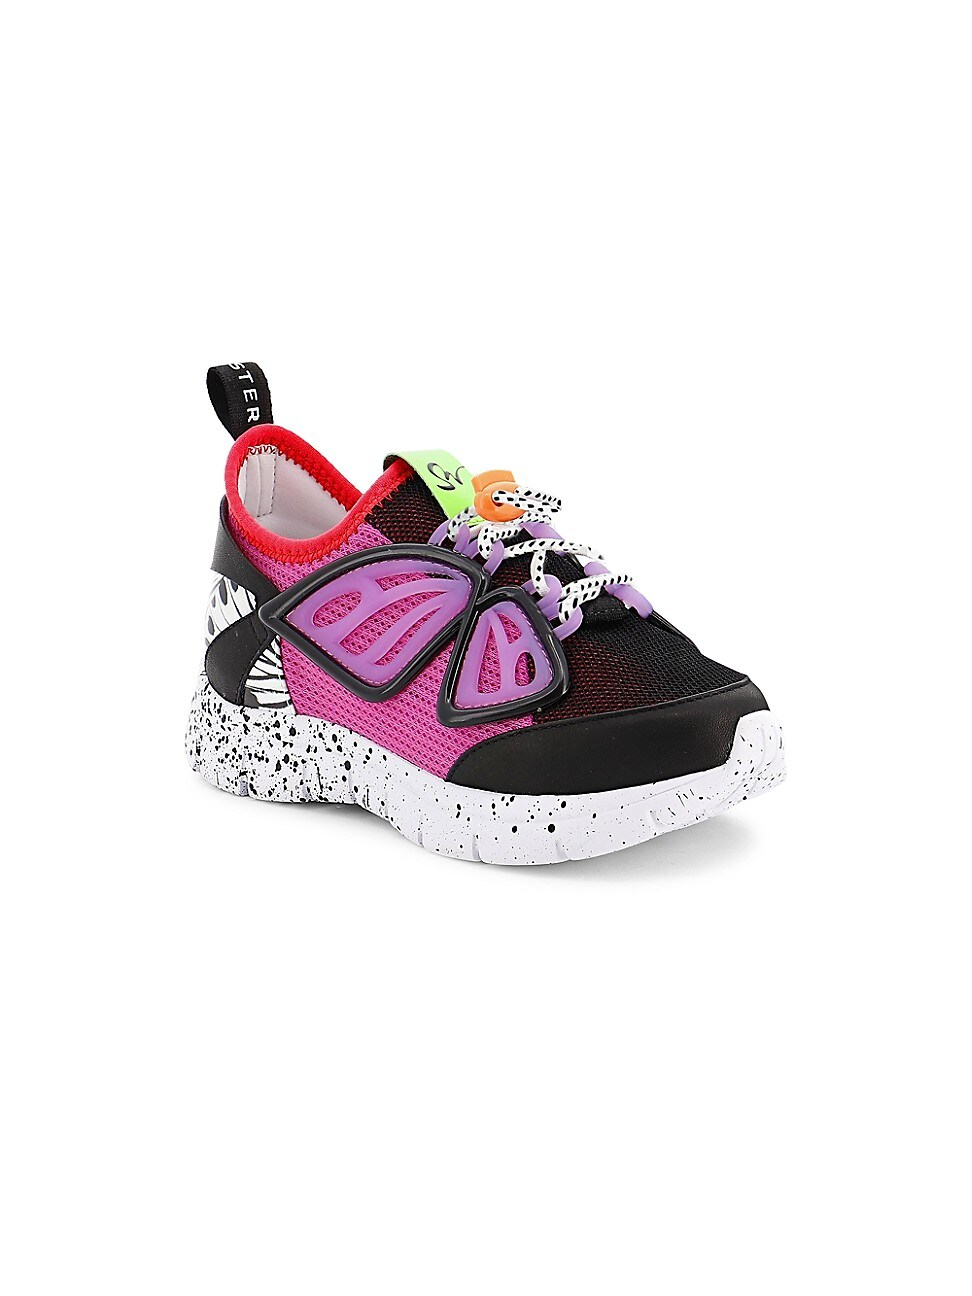 Sophia Webster Baby's, Little Girl's And Girl's Fly-by Sneakers In Black Purple